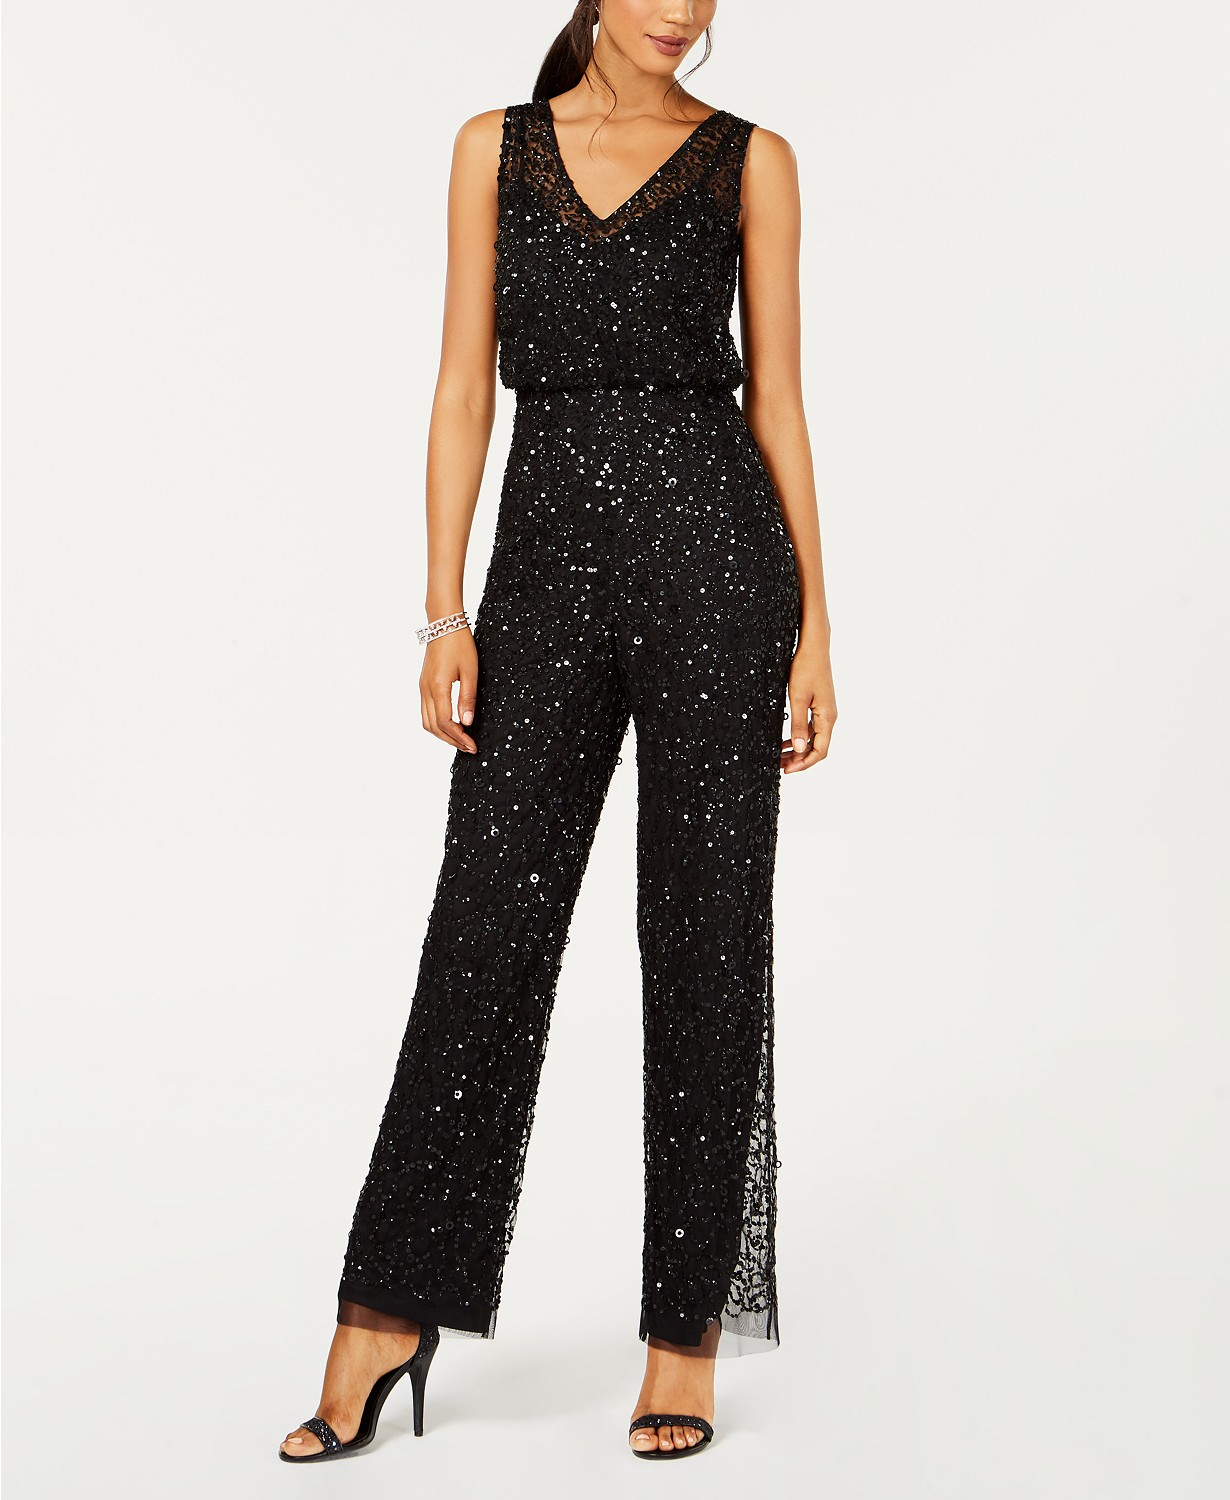 petite jumpsuits for wedding